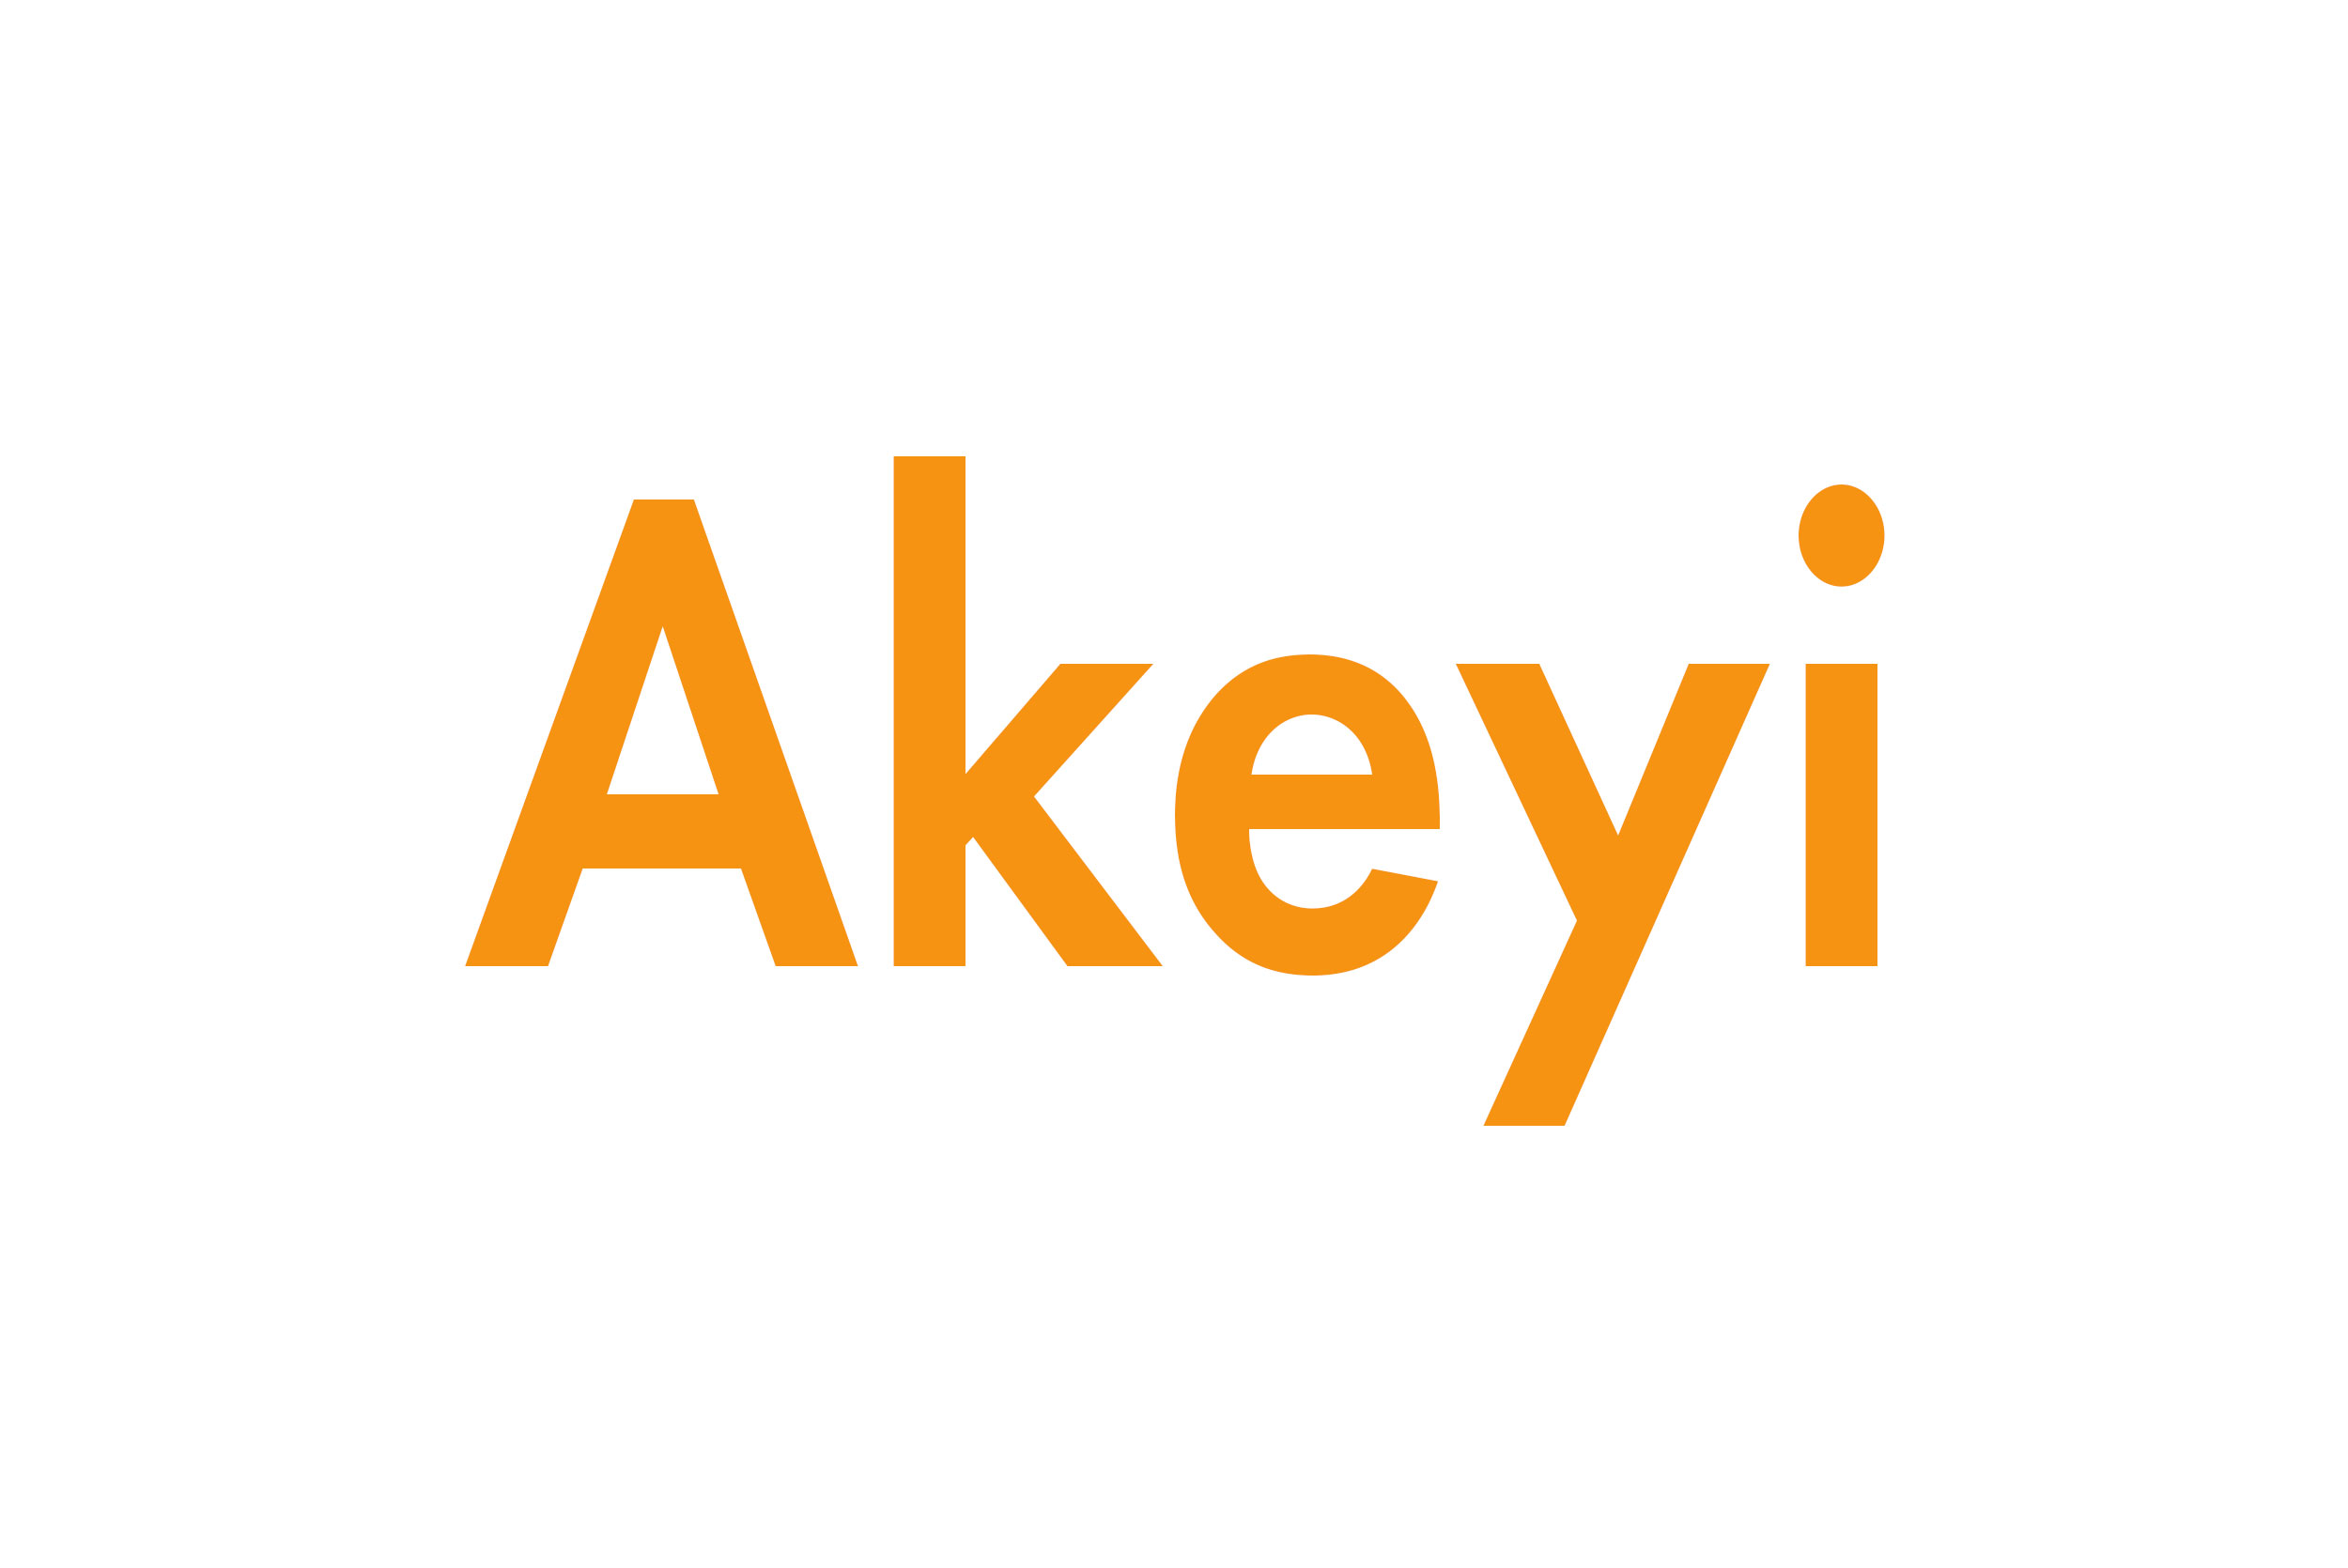 WORDS_website_creole_akeyi